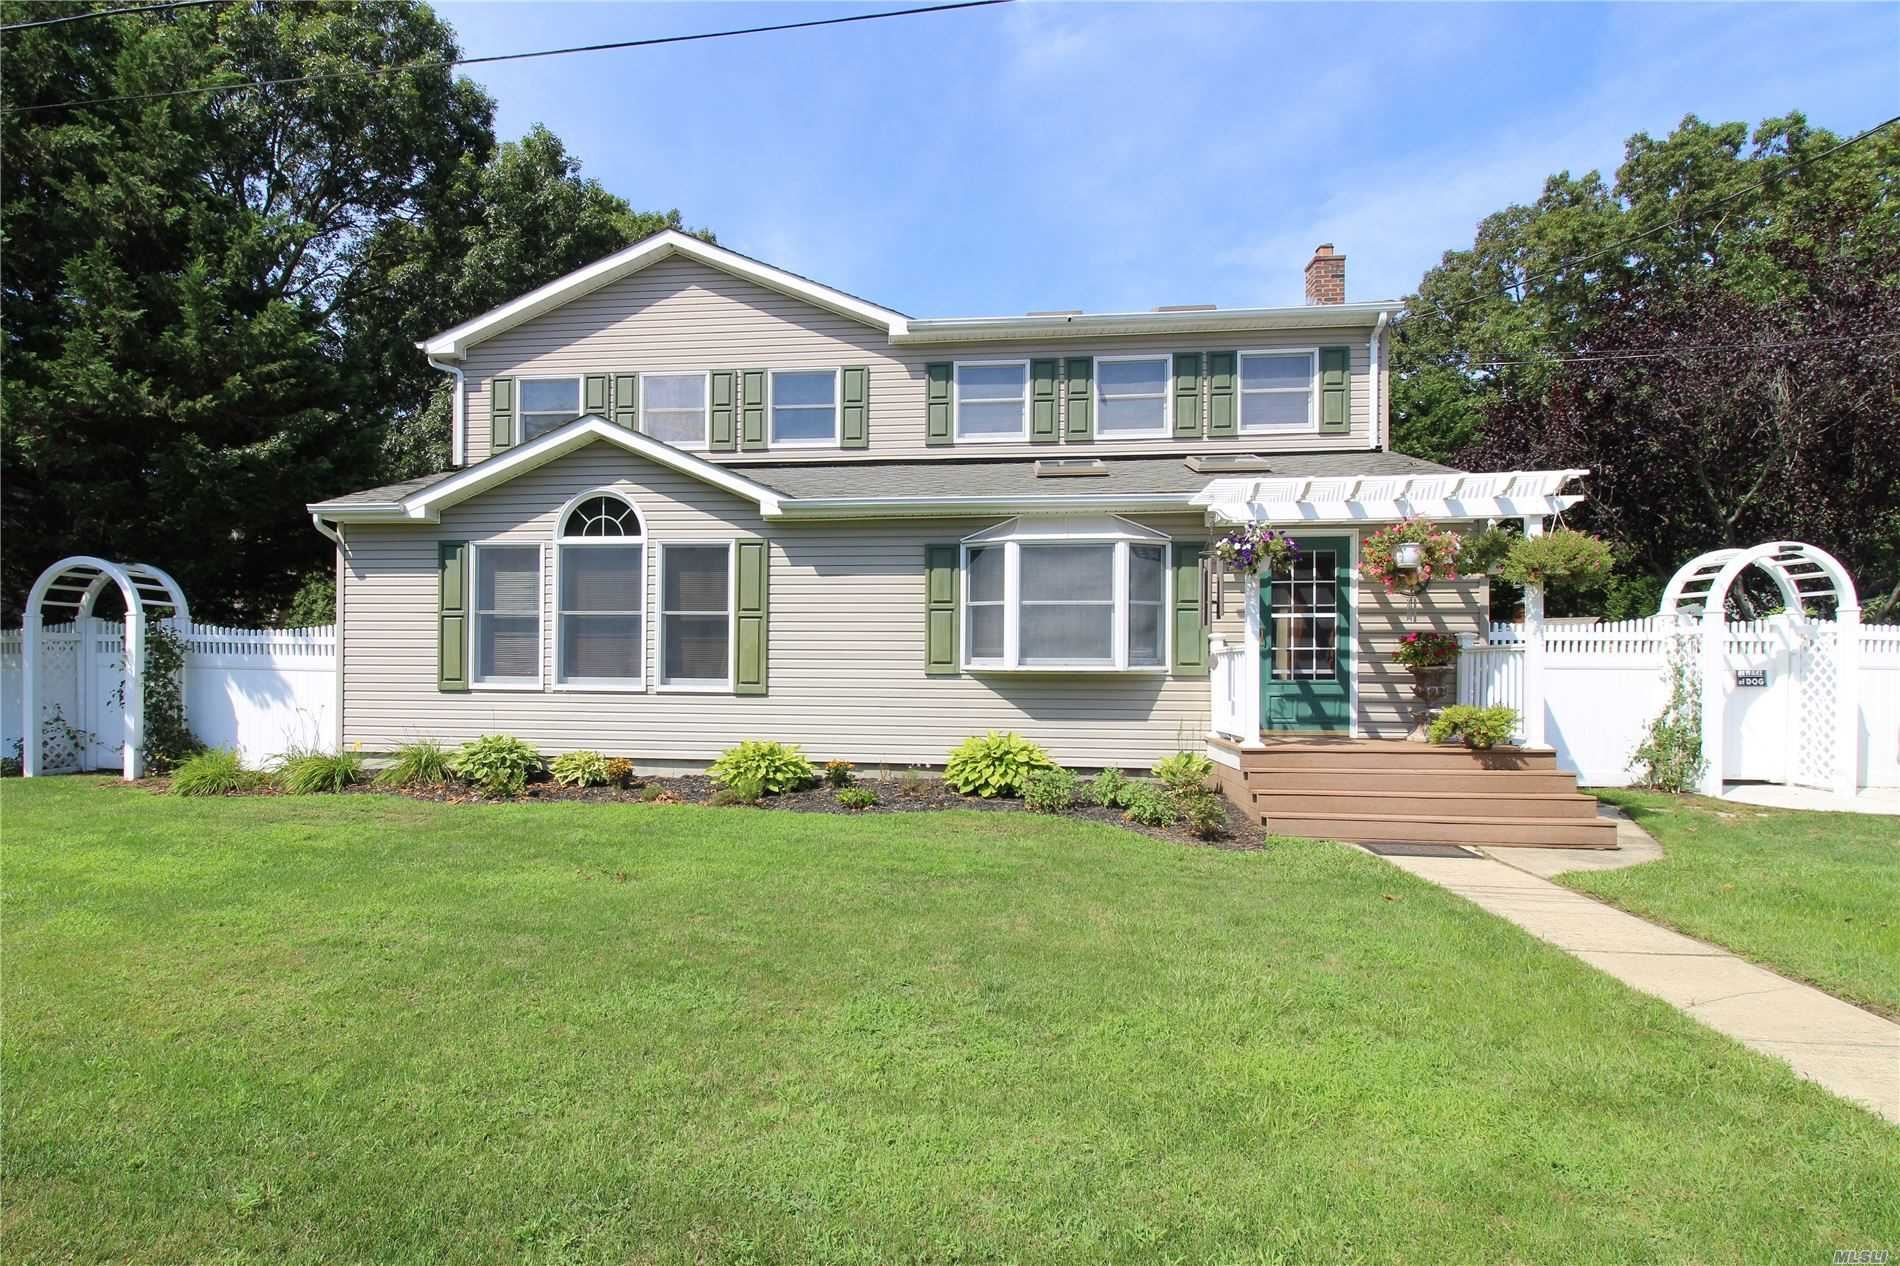 6 Reeves Place, Mastic, NY 11950 - MLS#: 3242978